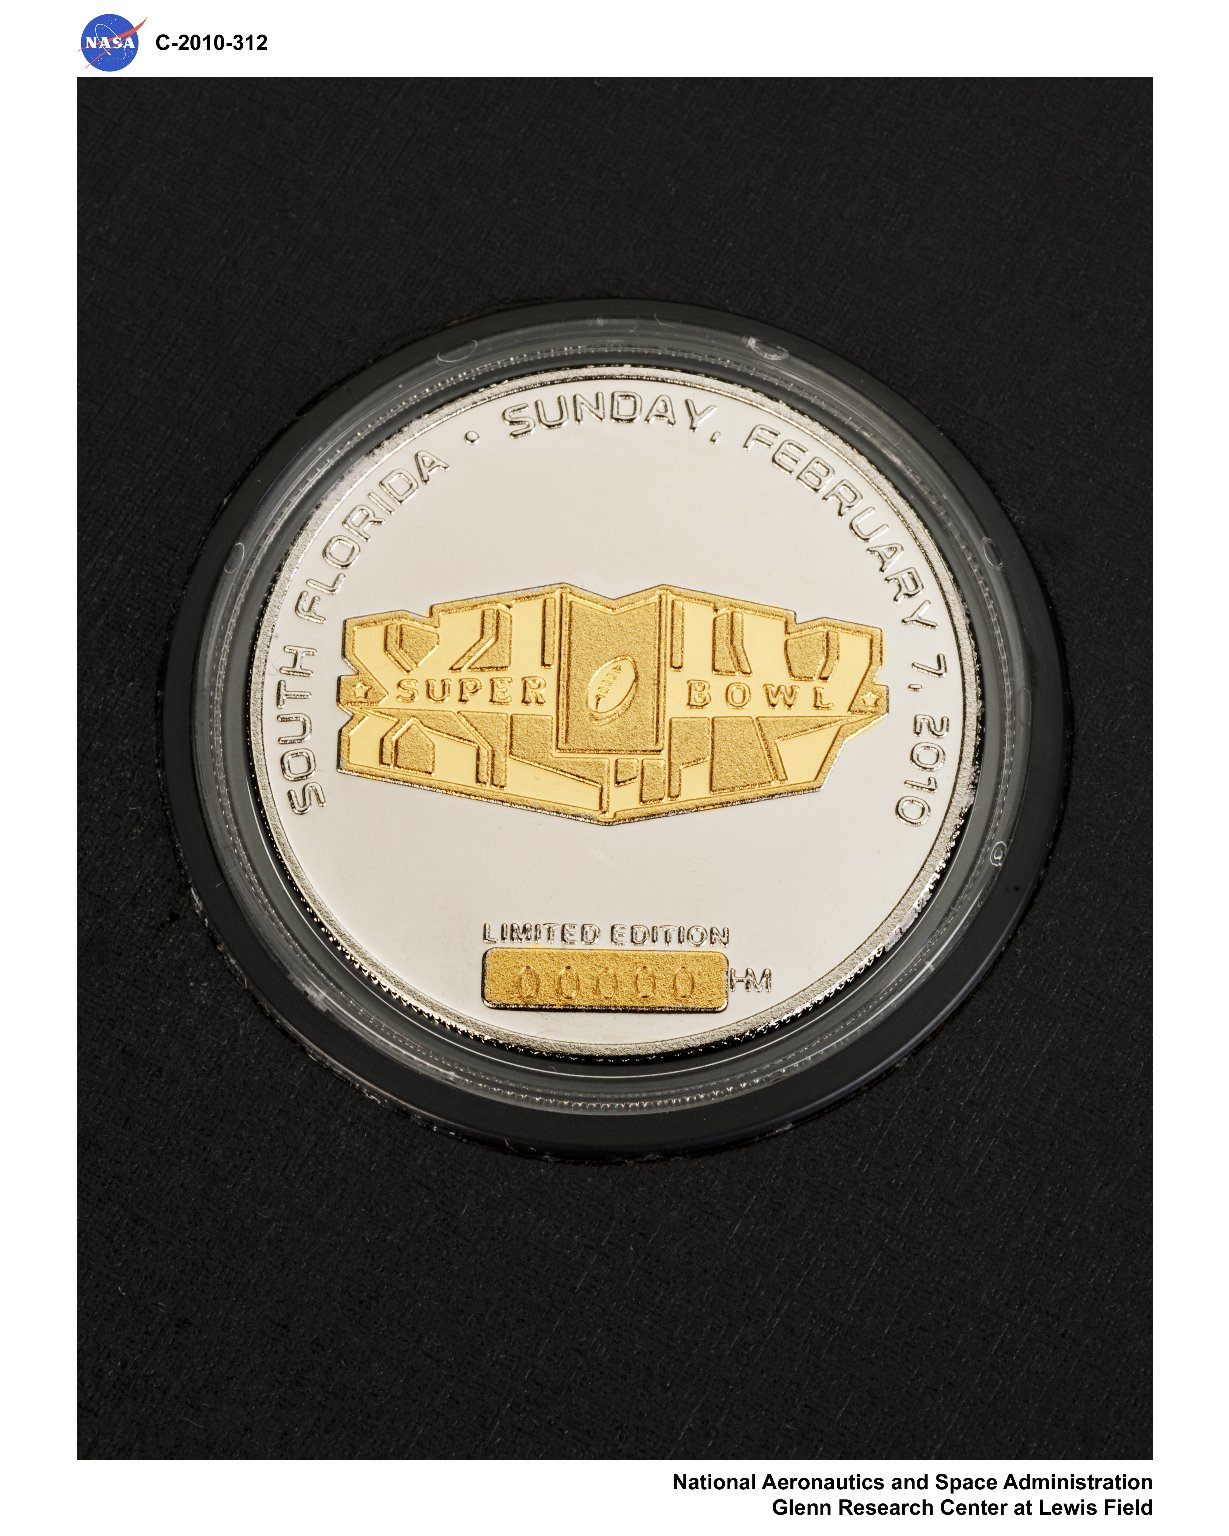 Super Bowl XLIV Game Coin which flew on STS-129